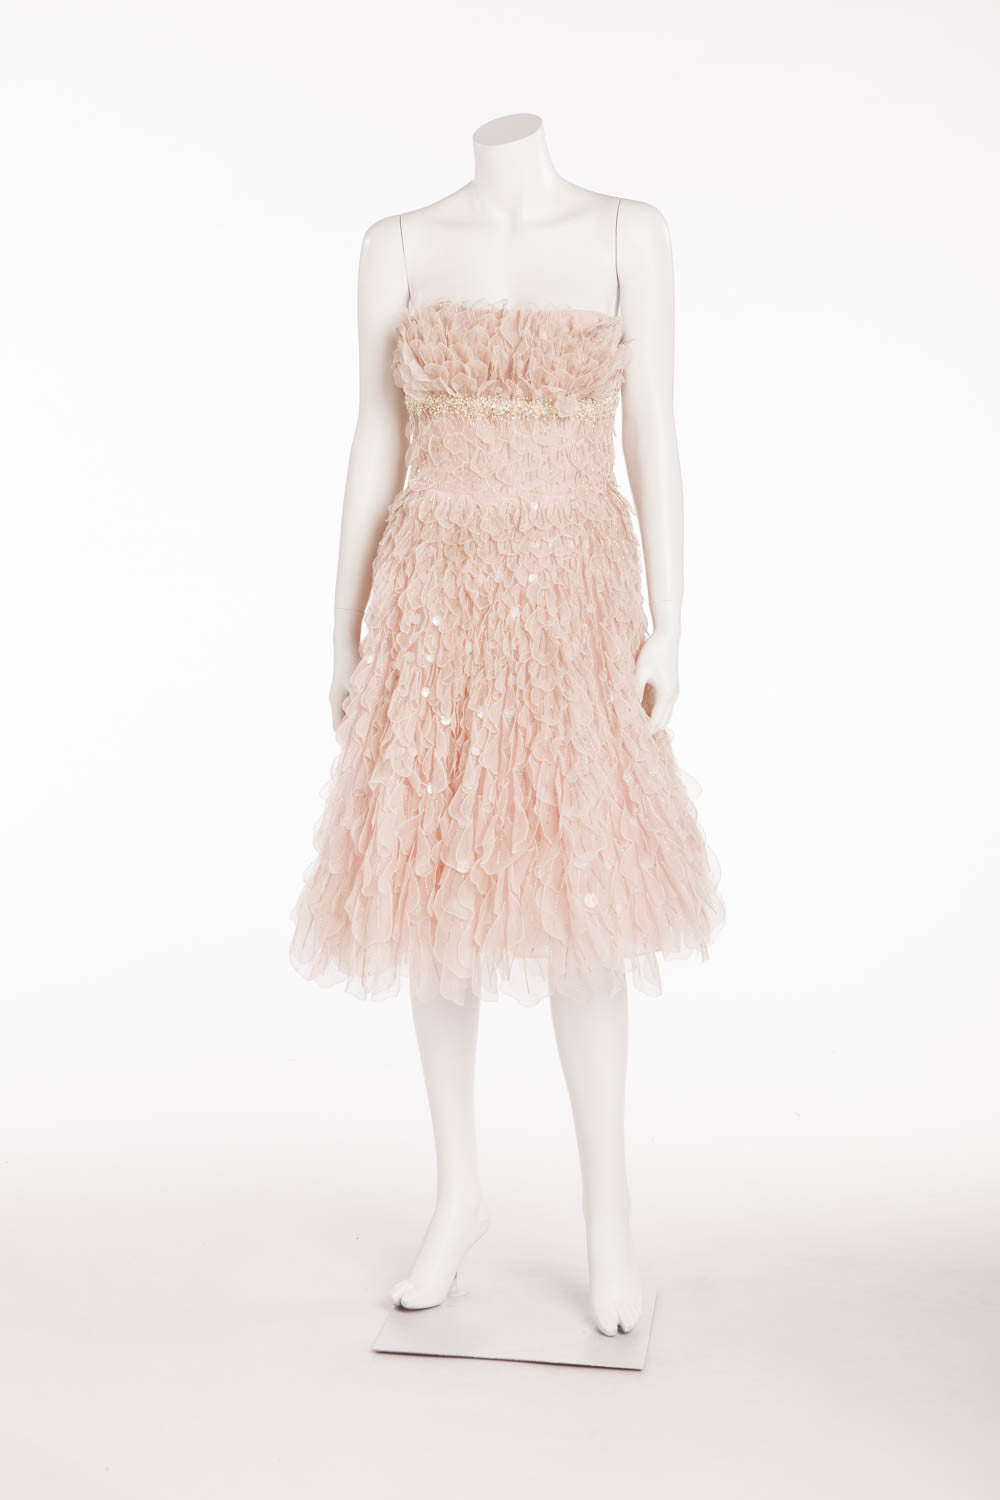 Oscar De La Renta - Pink Beaded Ruffle Mini Dress  - US 6